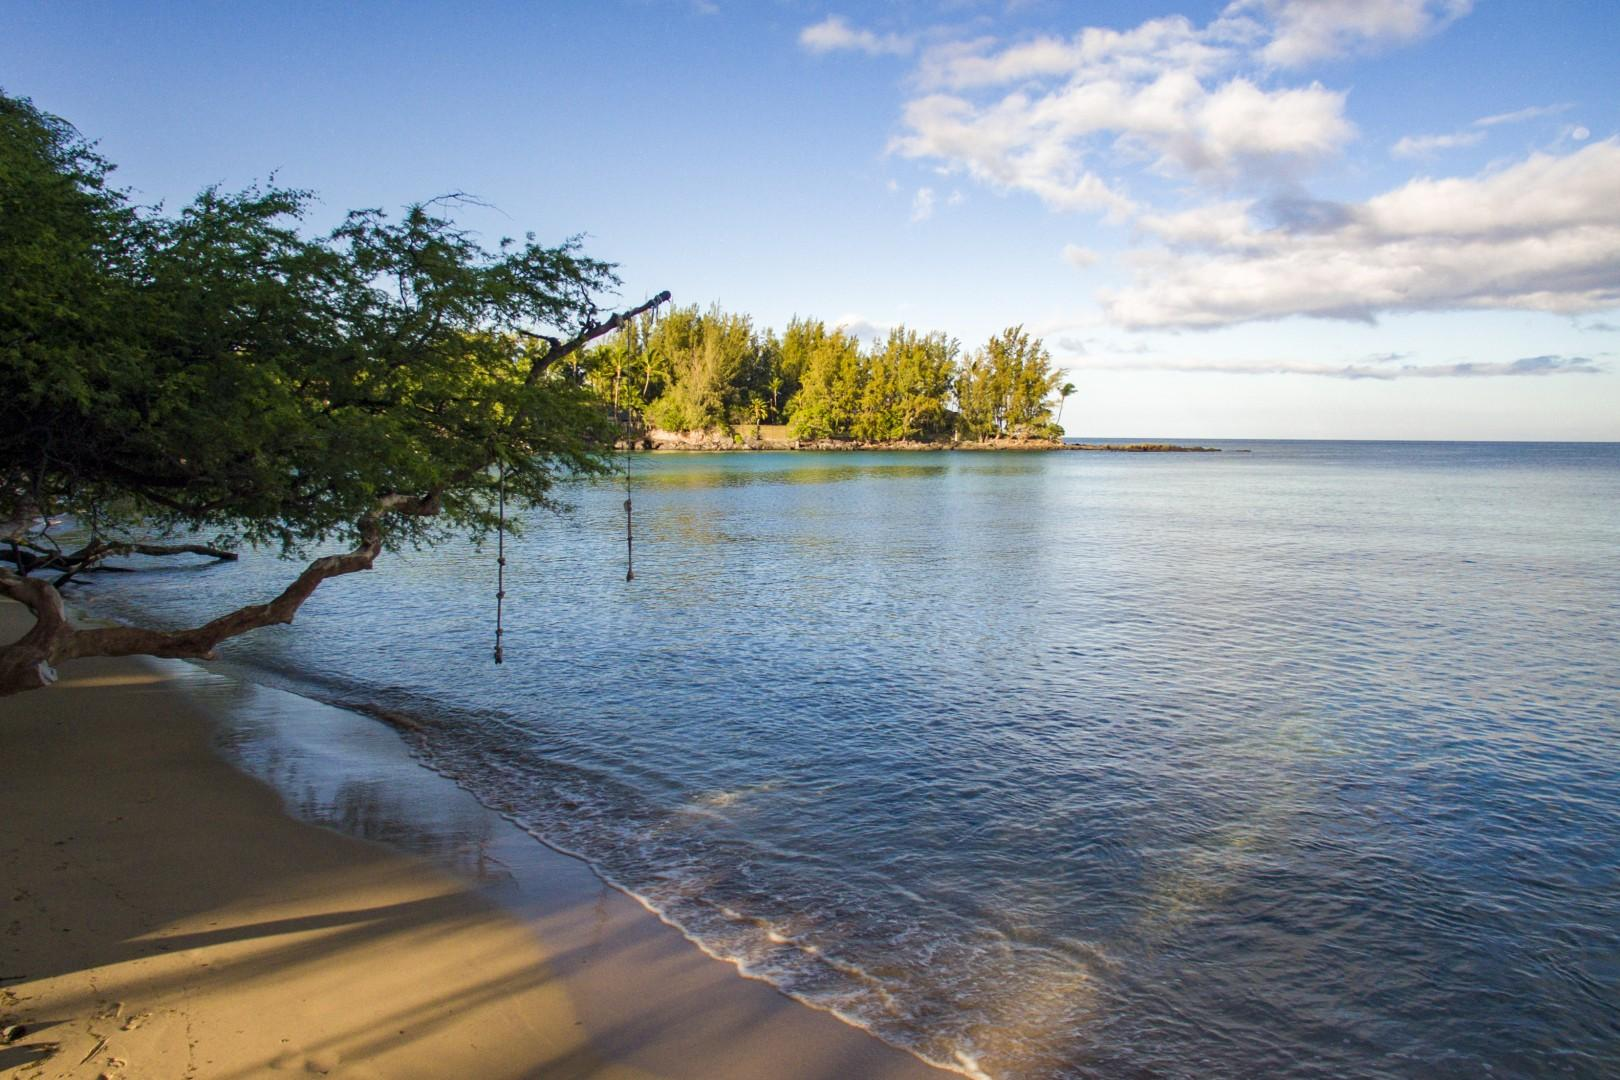 2. Wailea Bay, also known as Beach 69's is steps away from Hui Pu